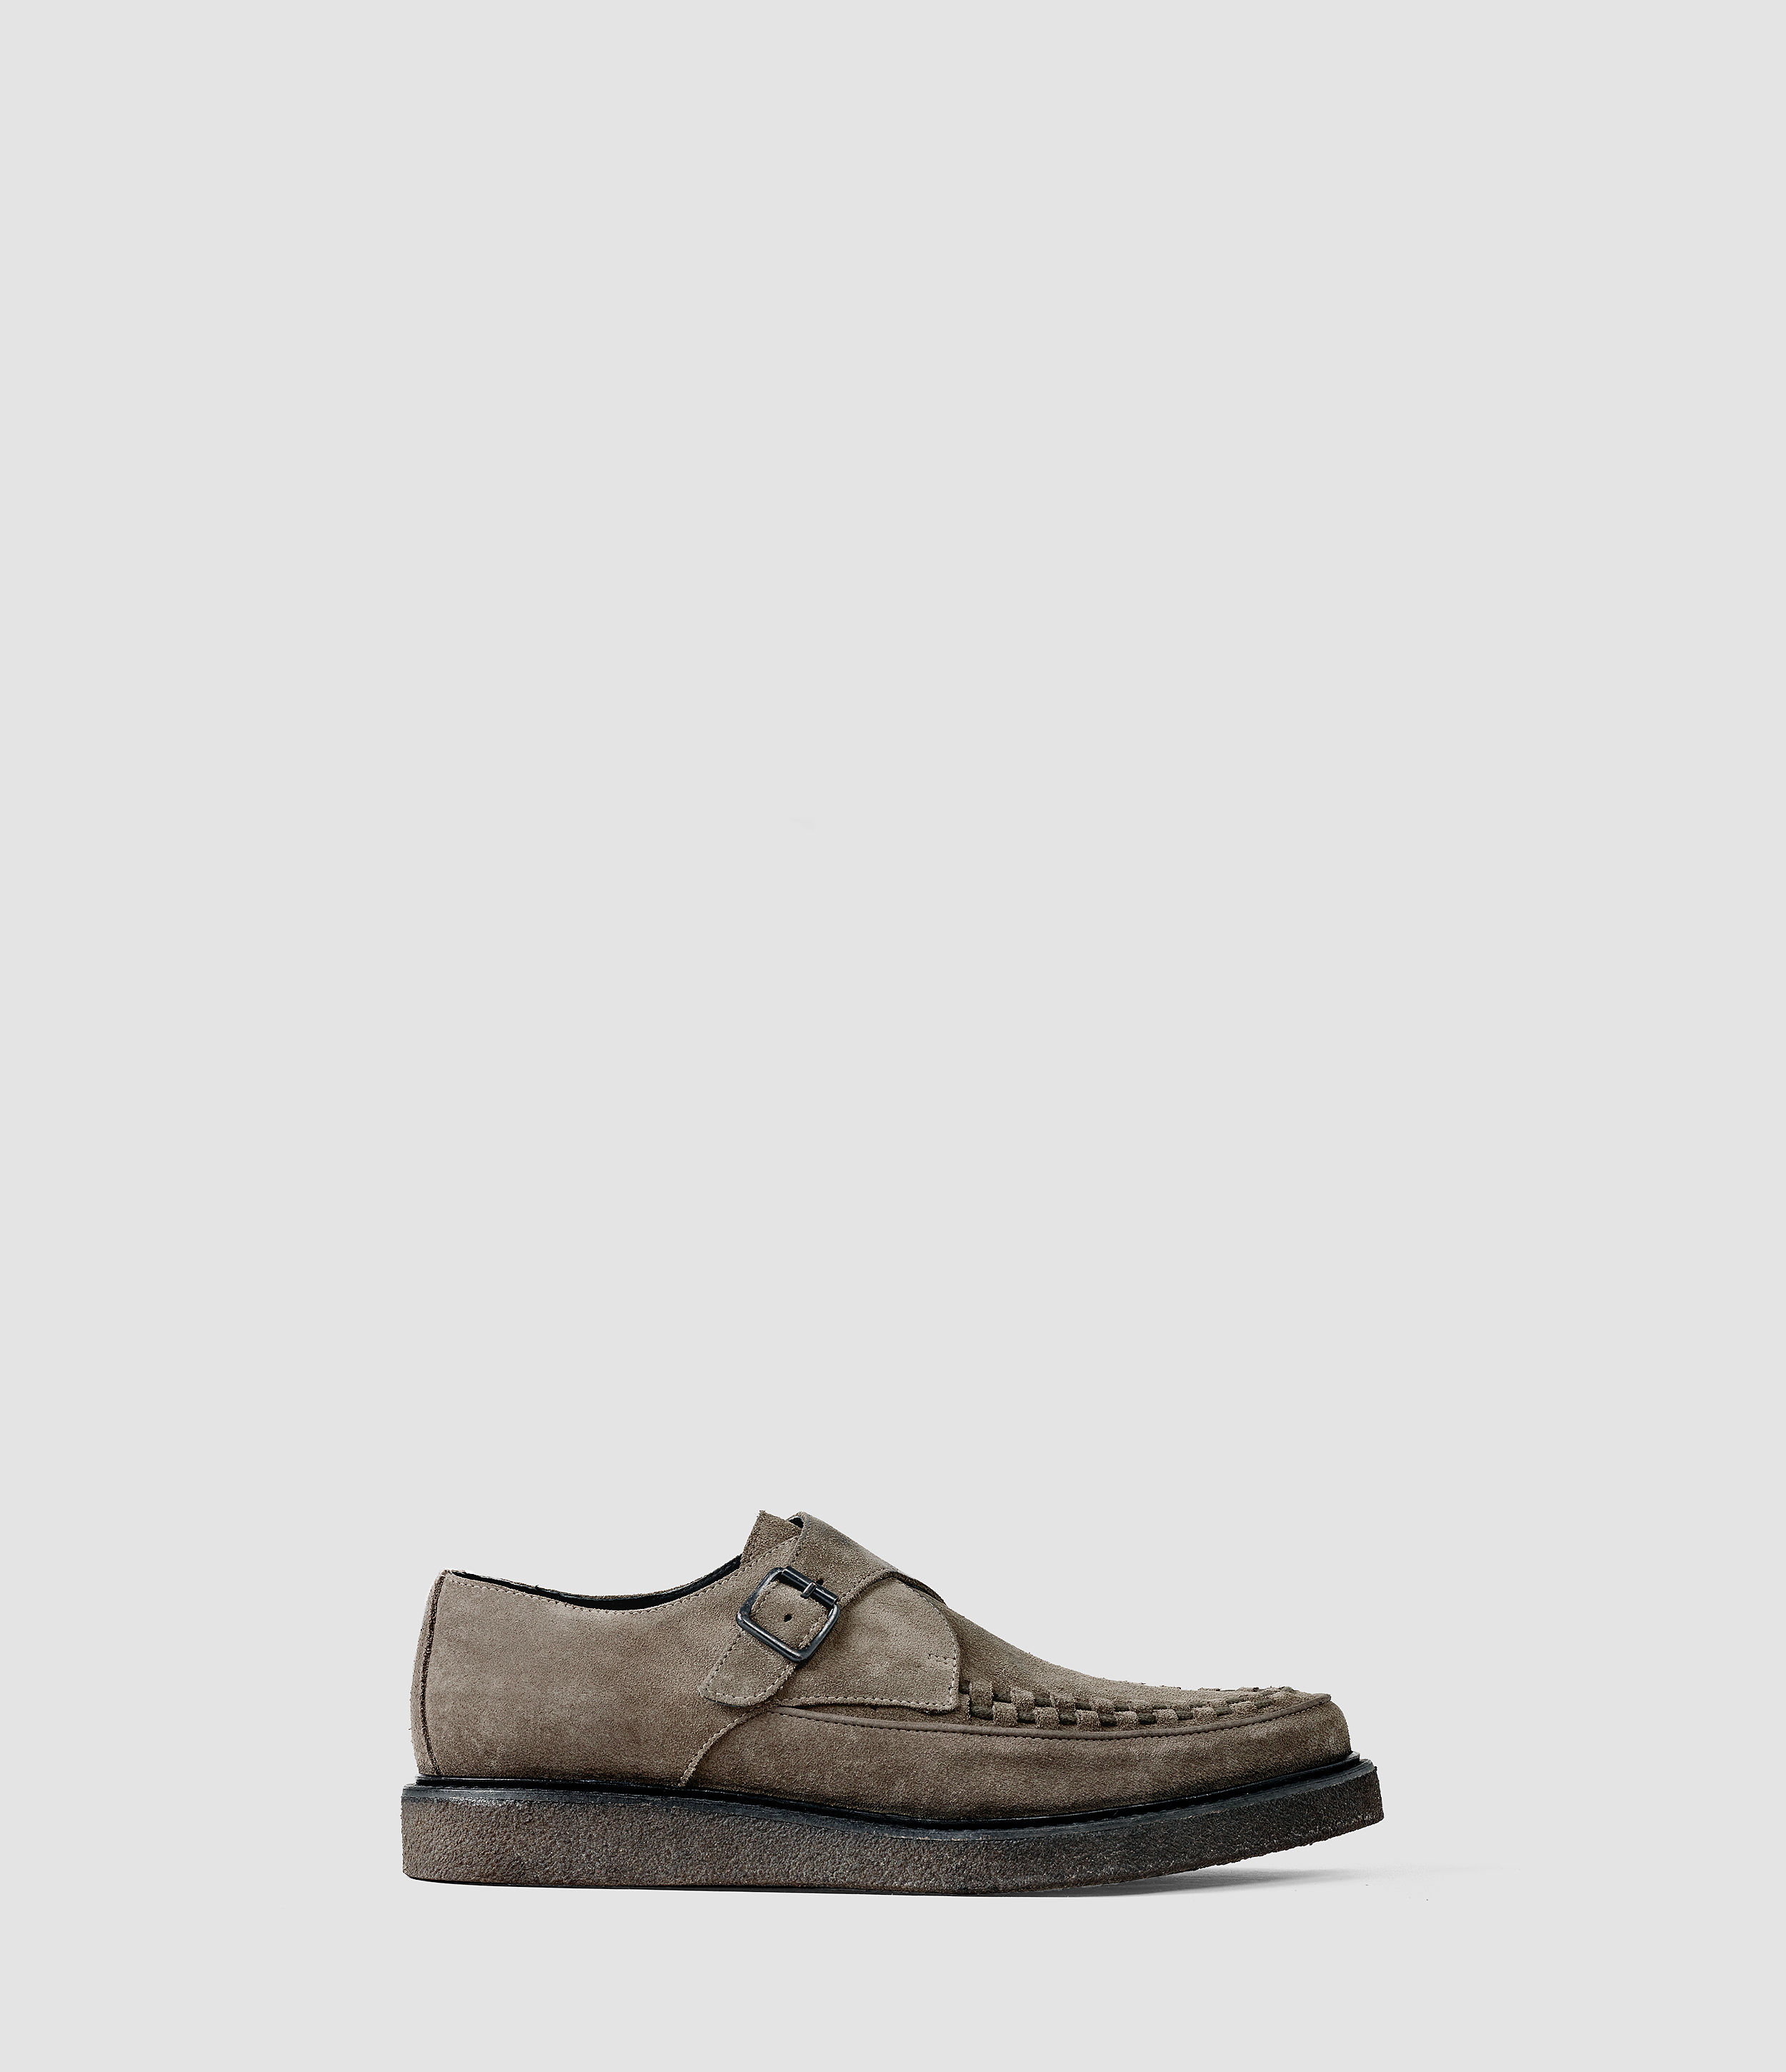 Are All Saints Shoes Made From Cow Leather